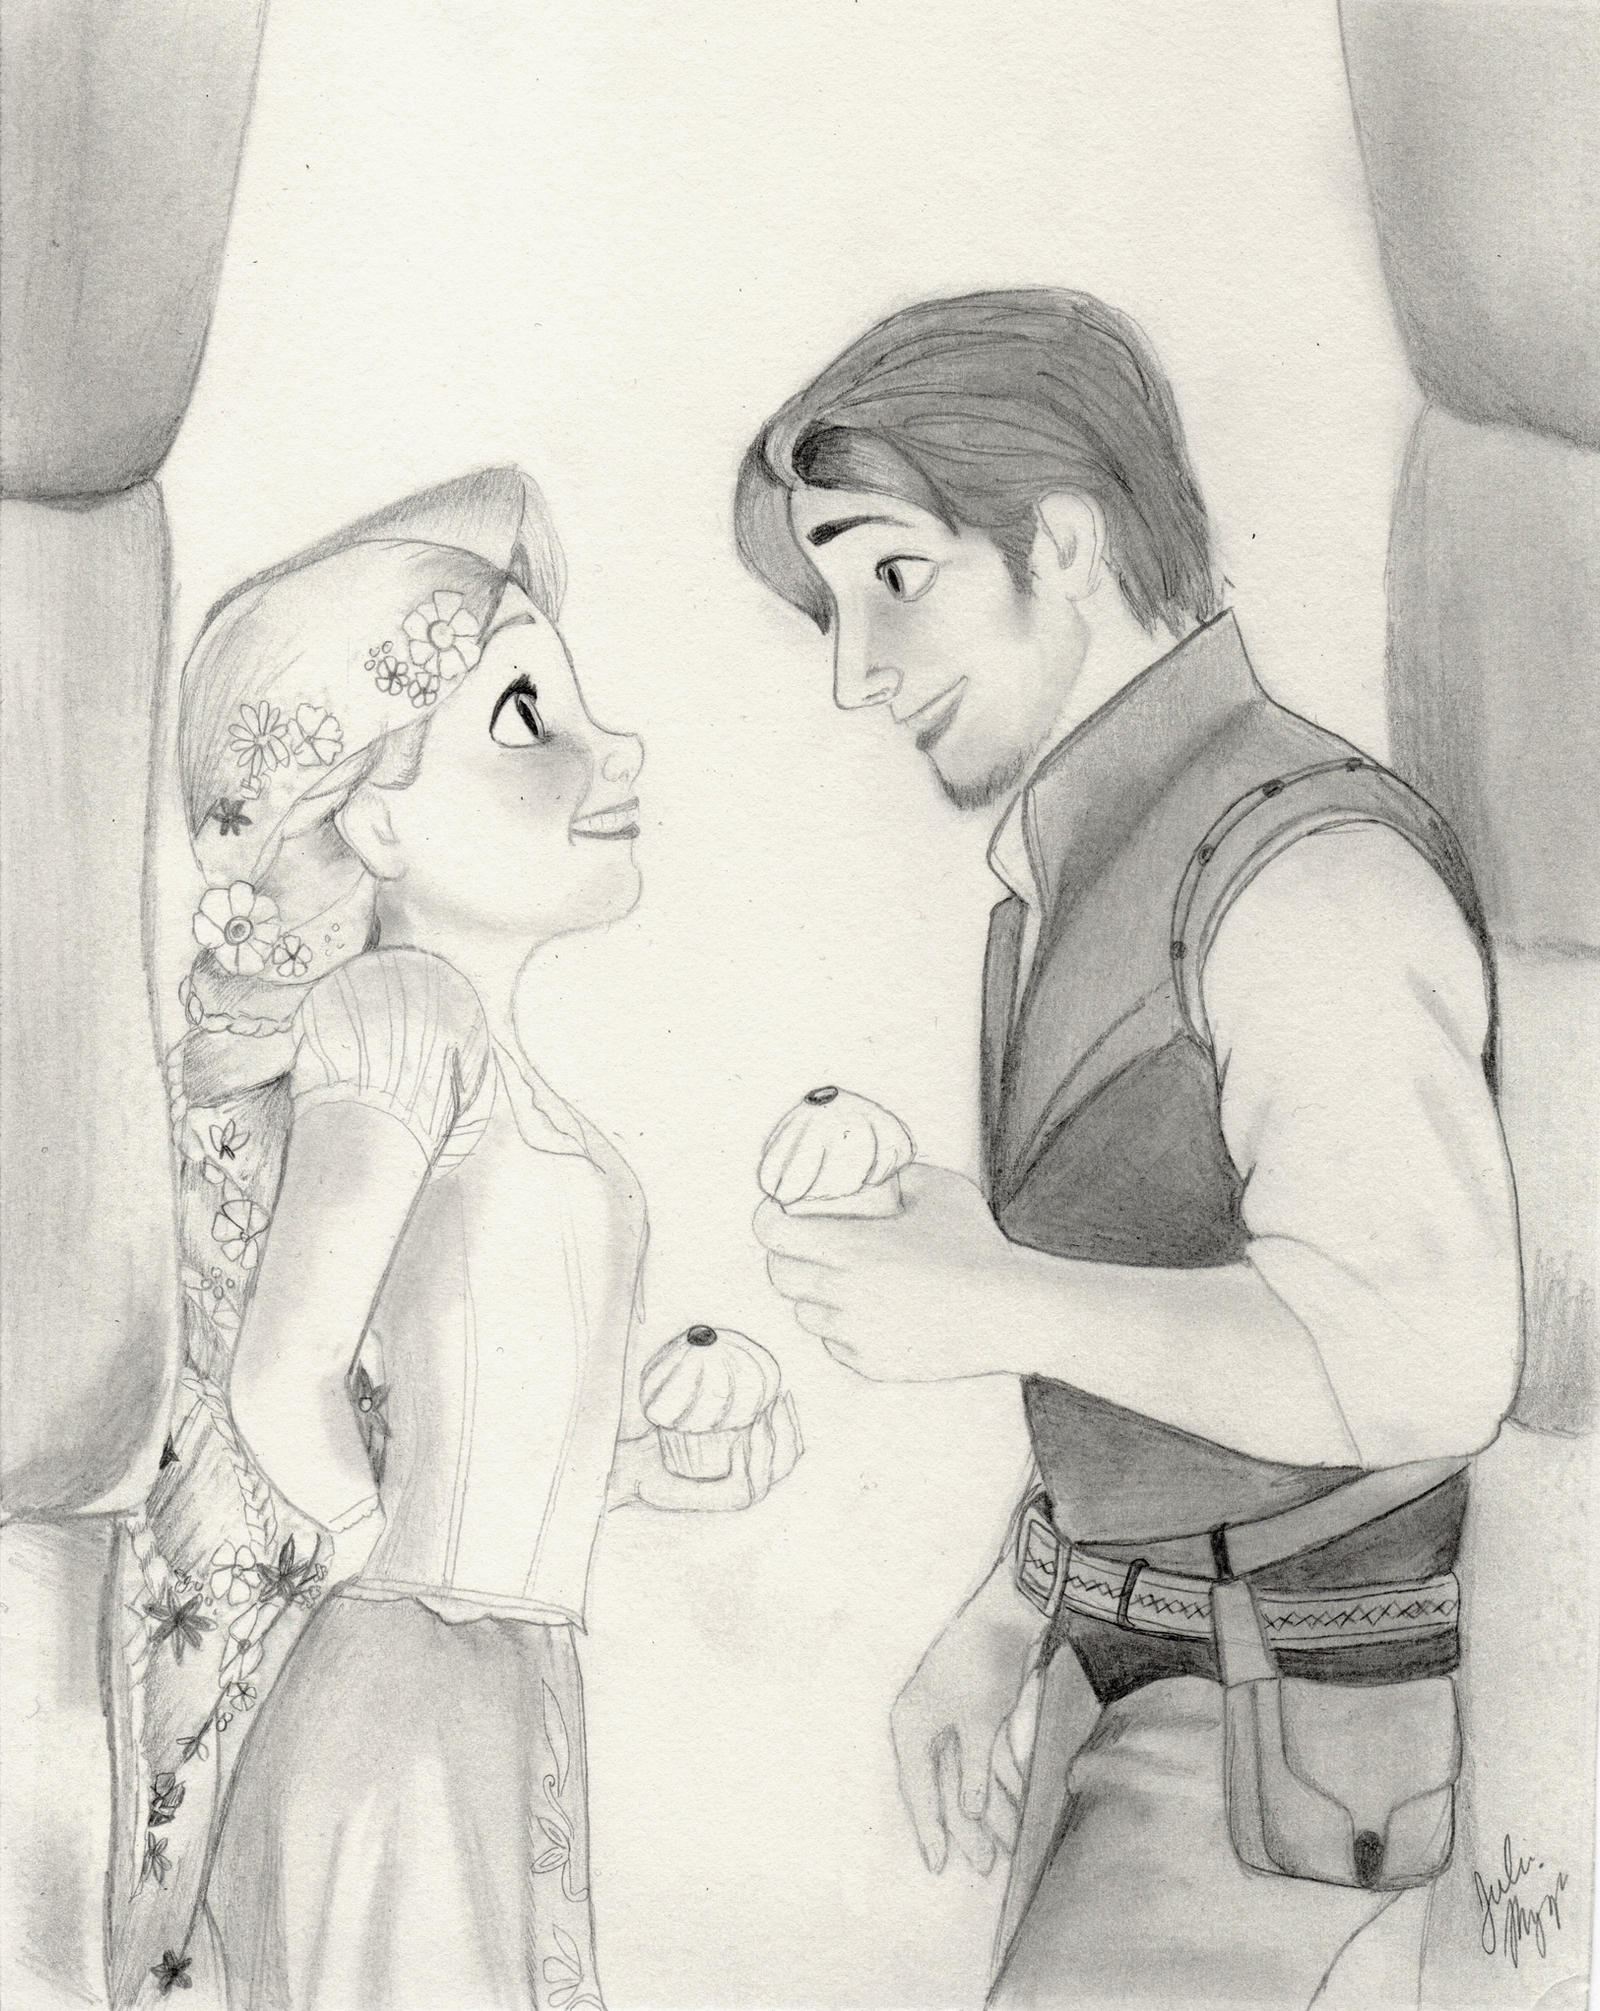 Rapunzel And Flynn Tangled Graphite Drawing By Julesrizz On Deviantart